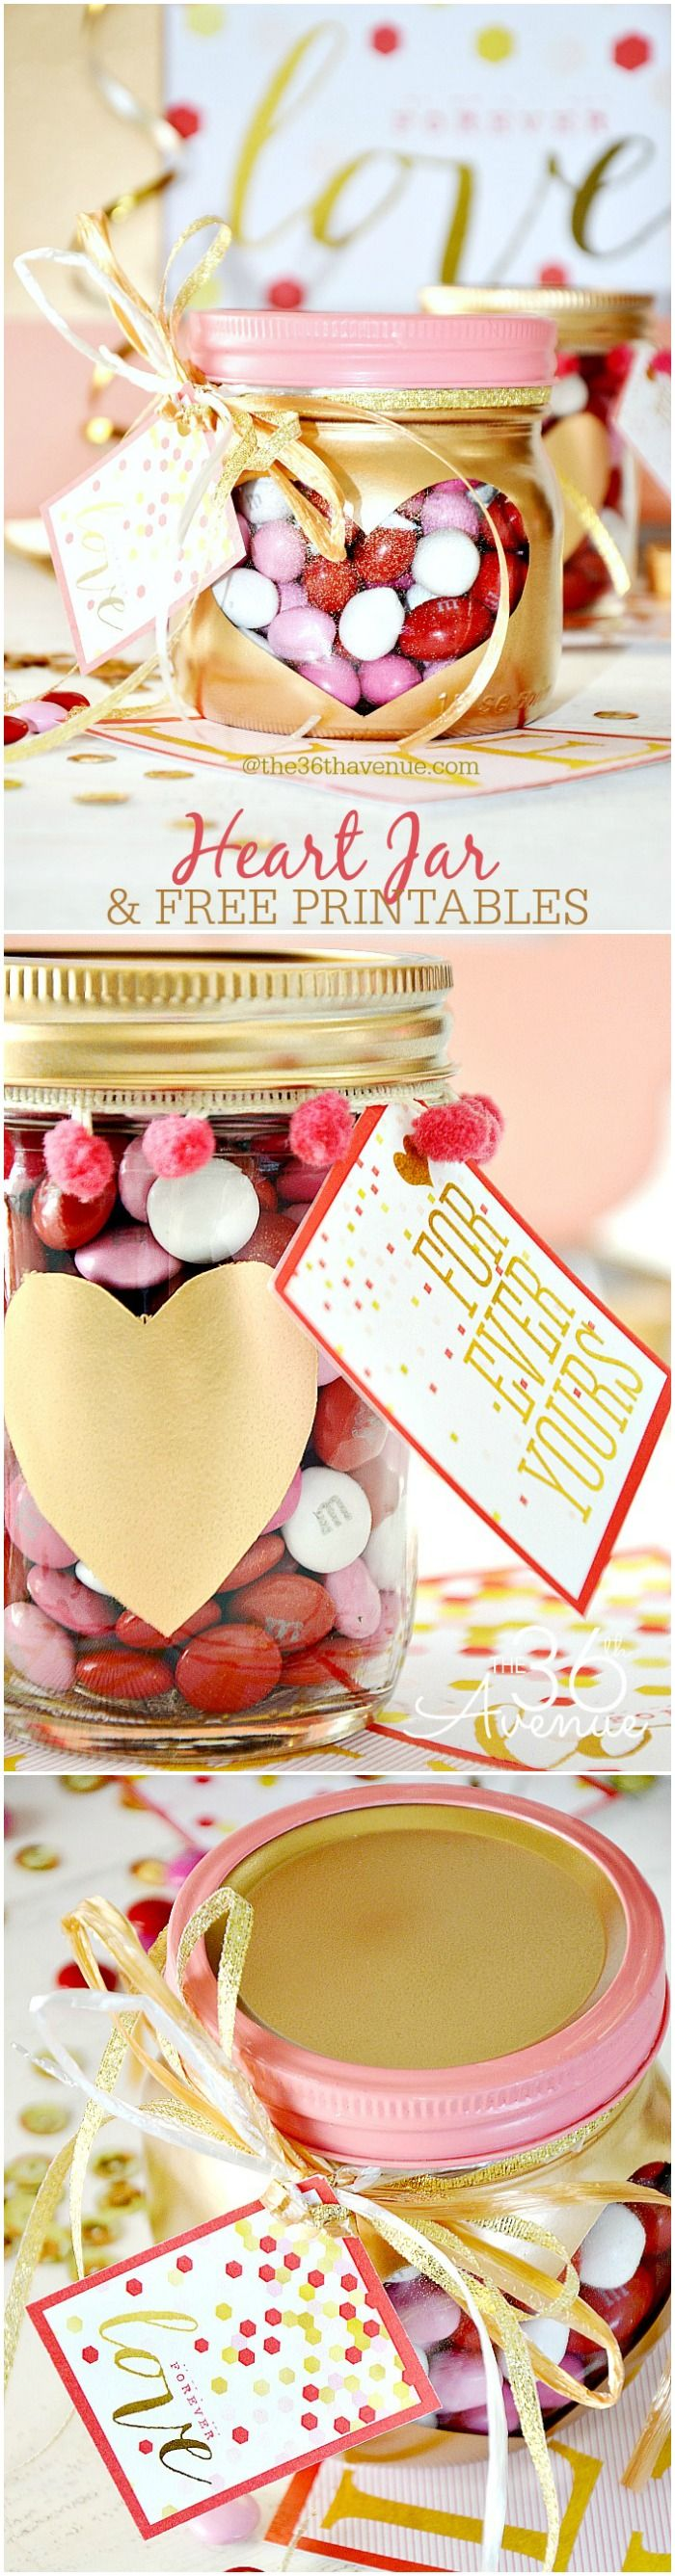 Valentine's Day Gift Idea - Super cute Heart Jars and Free Printables over at the36thavenue.com PIN IT NOW AND MAKE THEM LATER!